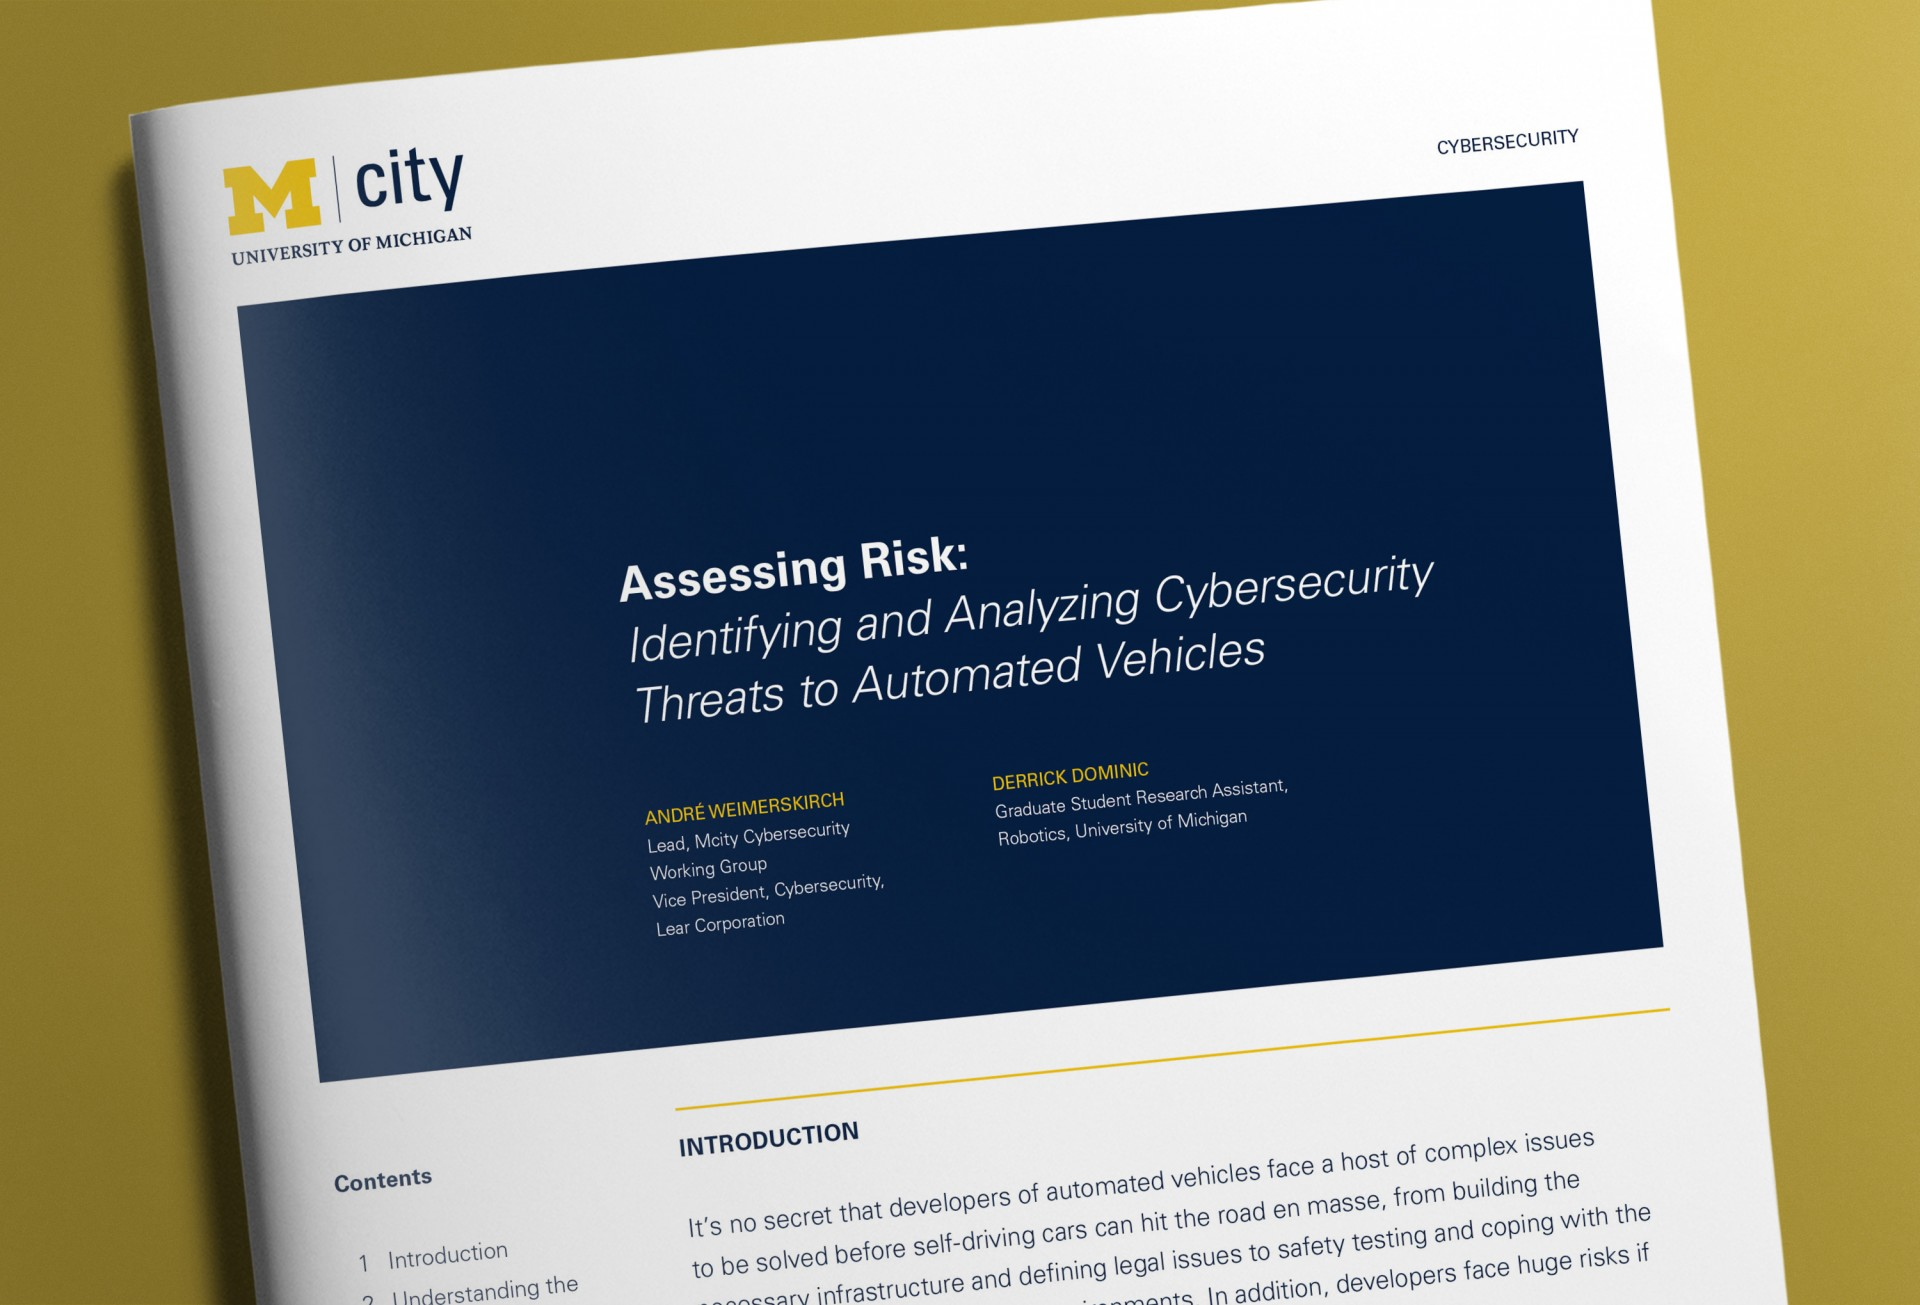 007 Research Paper Papers On Cyber Security Whitepaper Cybersecurity Wonderful In E Commerce Topics Pdf 1920